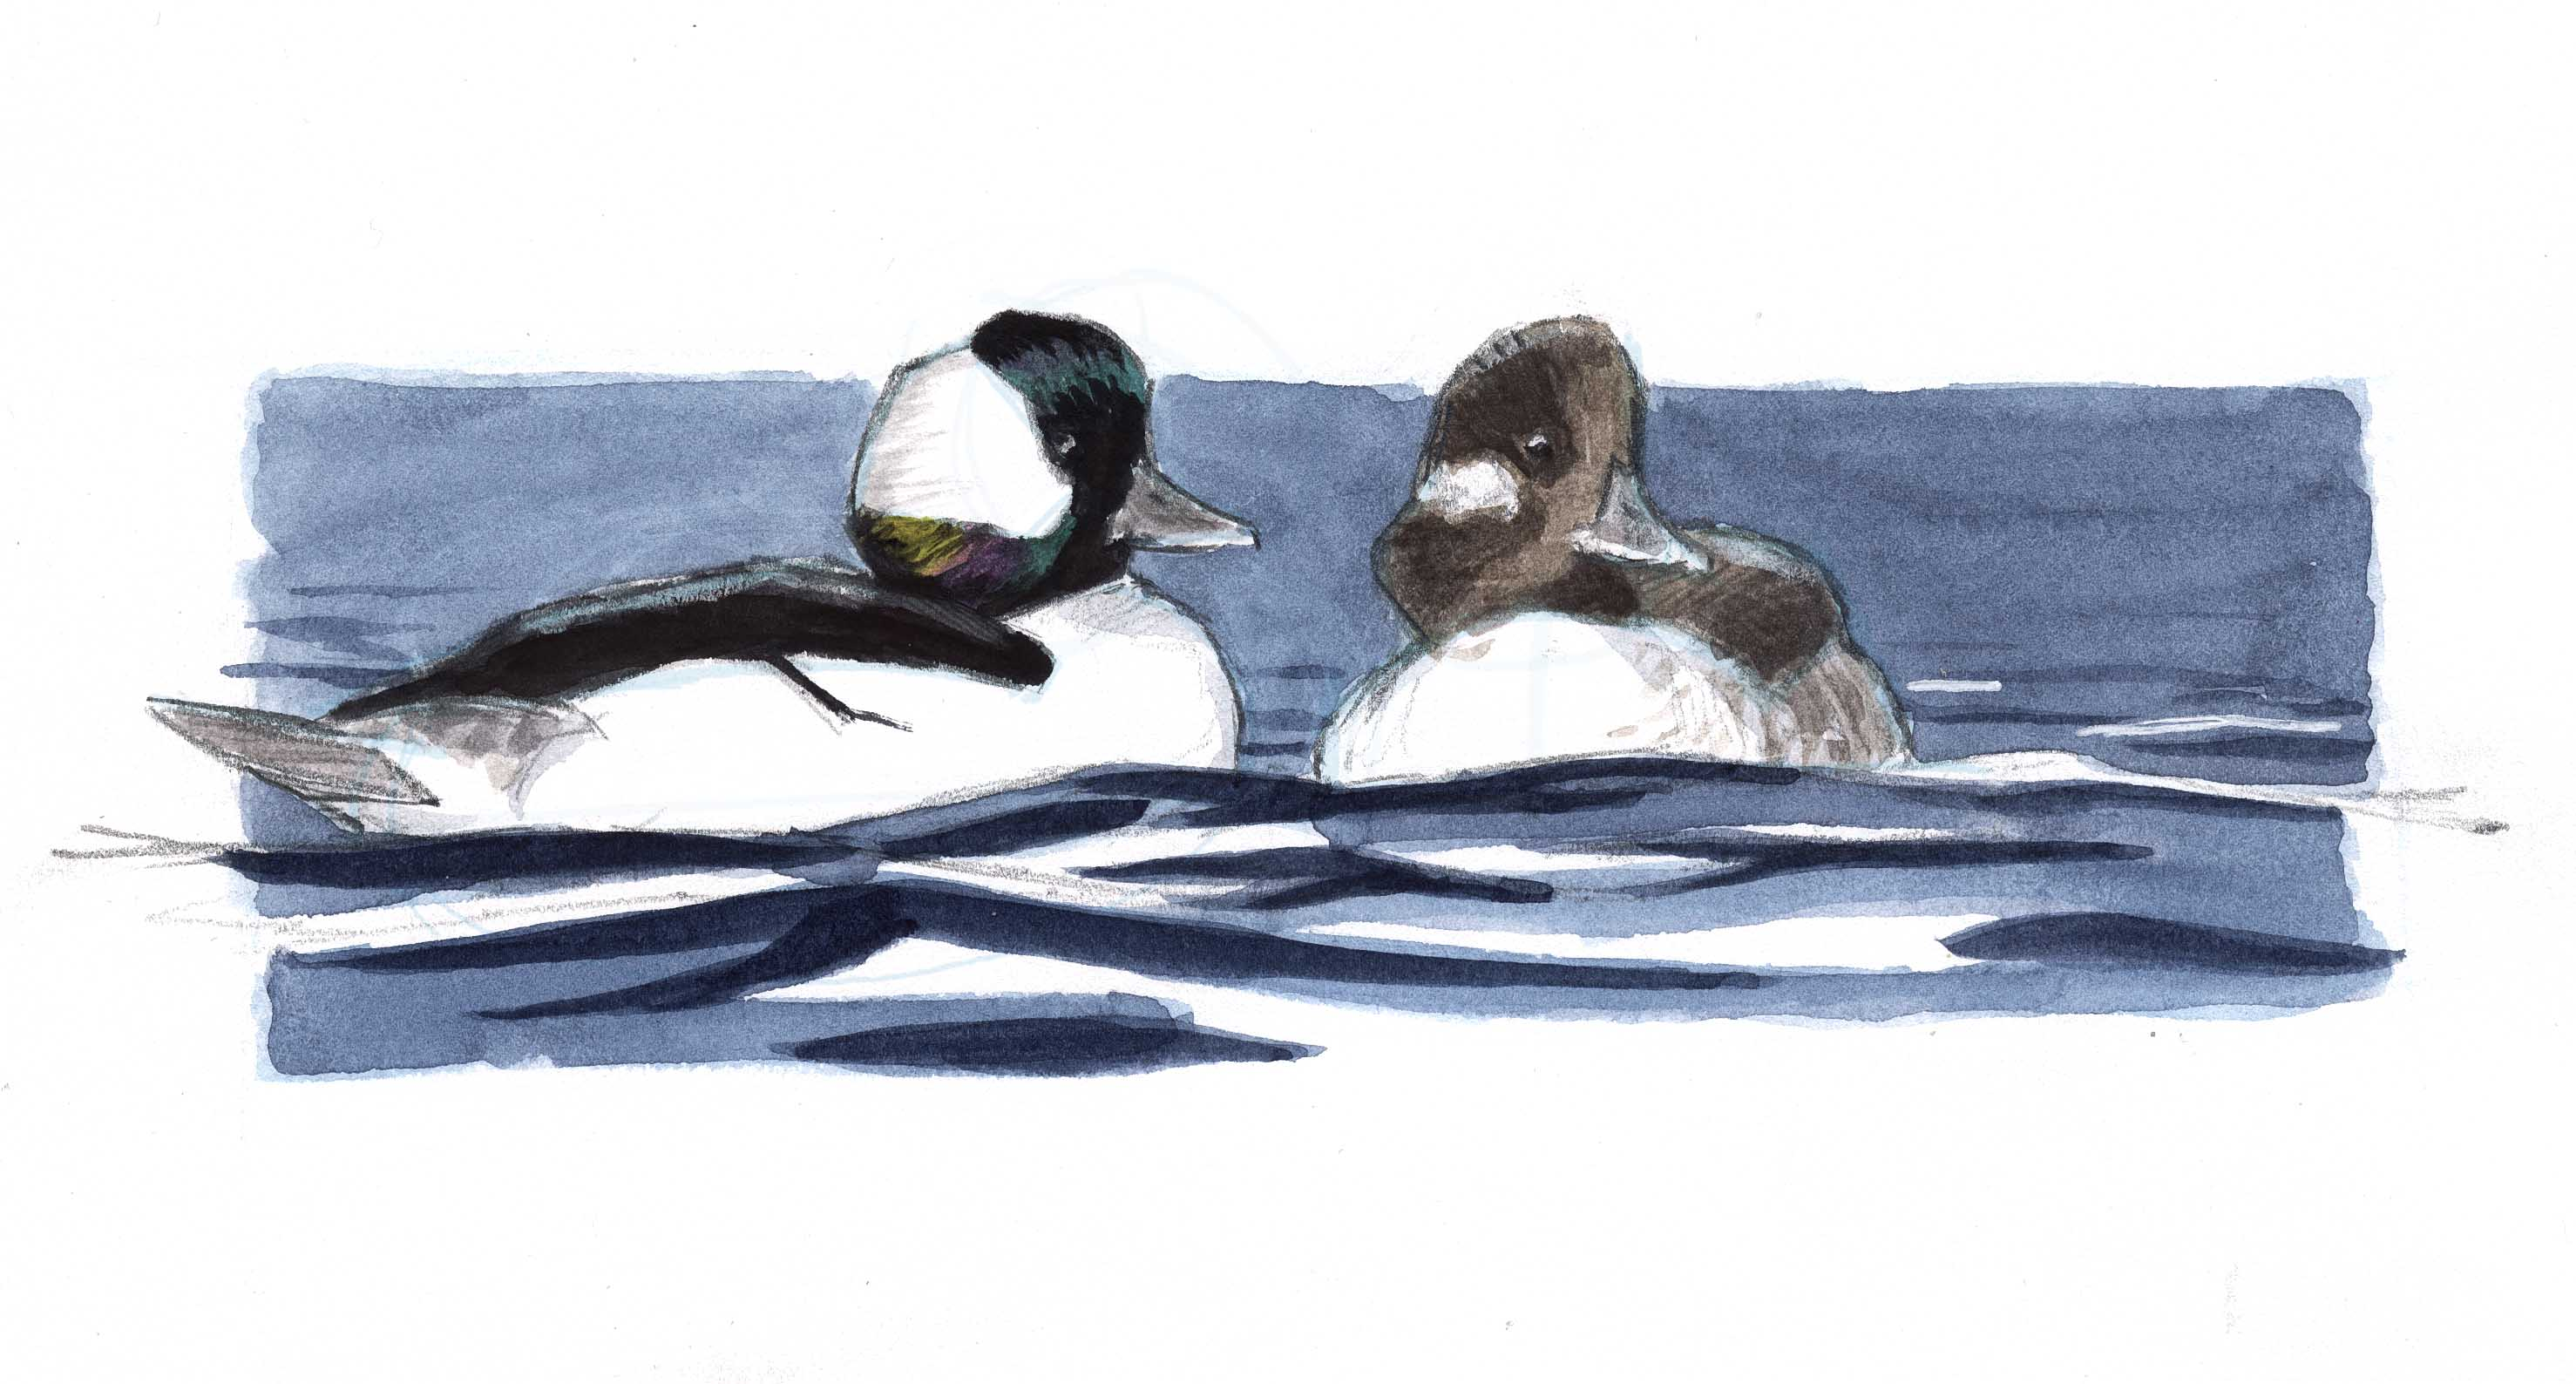 How To Draw Ducks And Waterfowl Video Workshop John Muir Laws